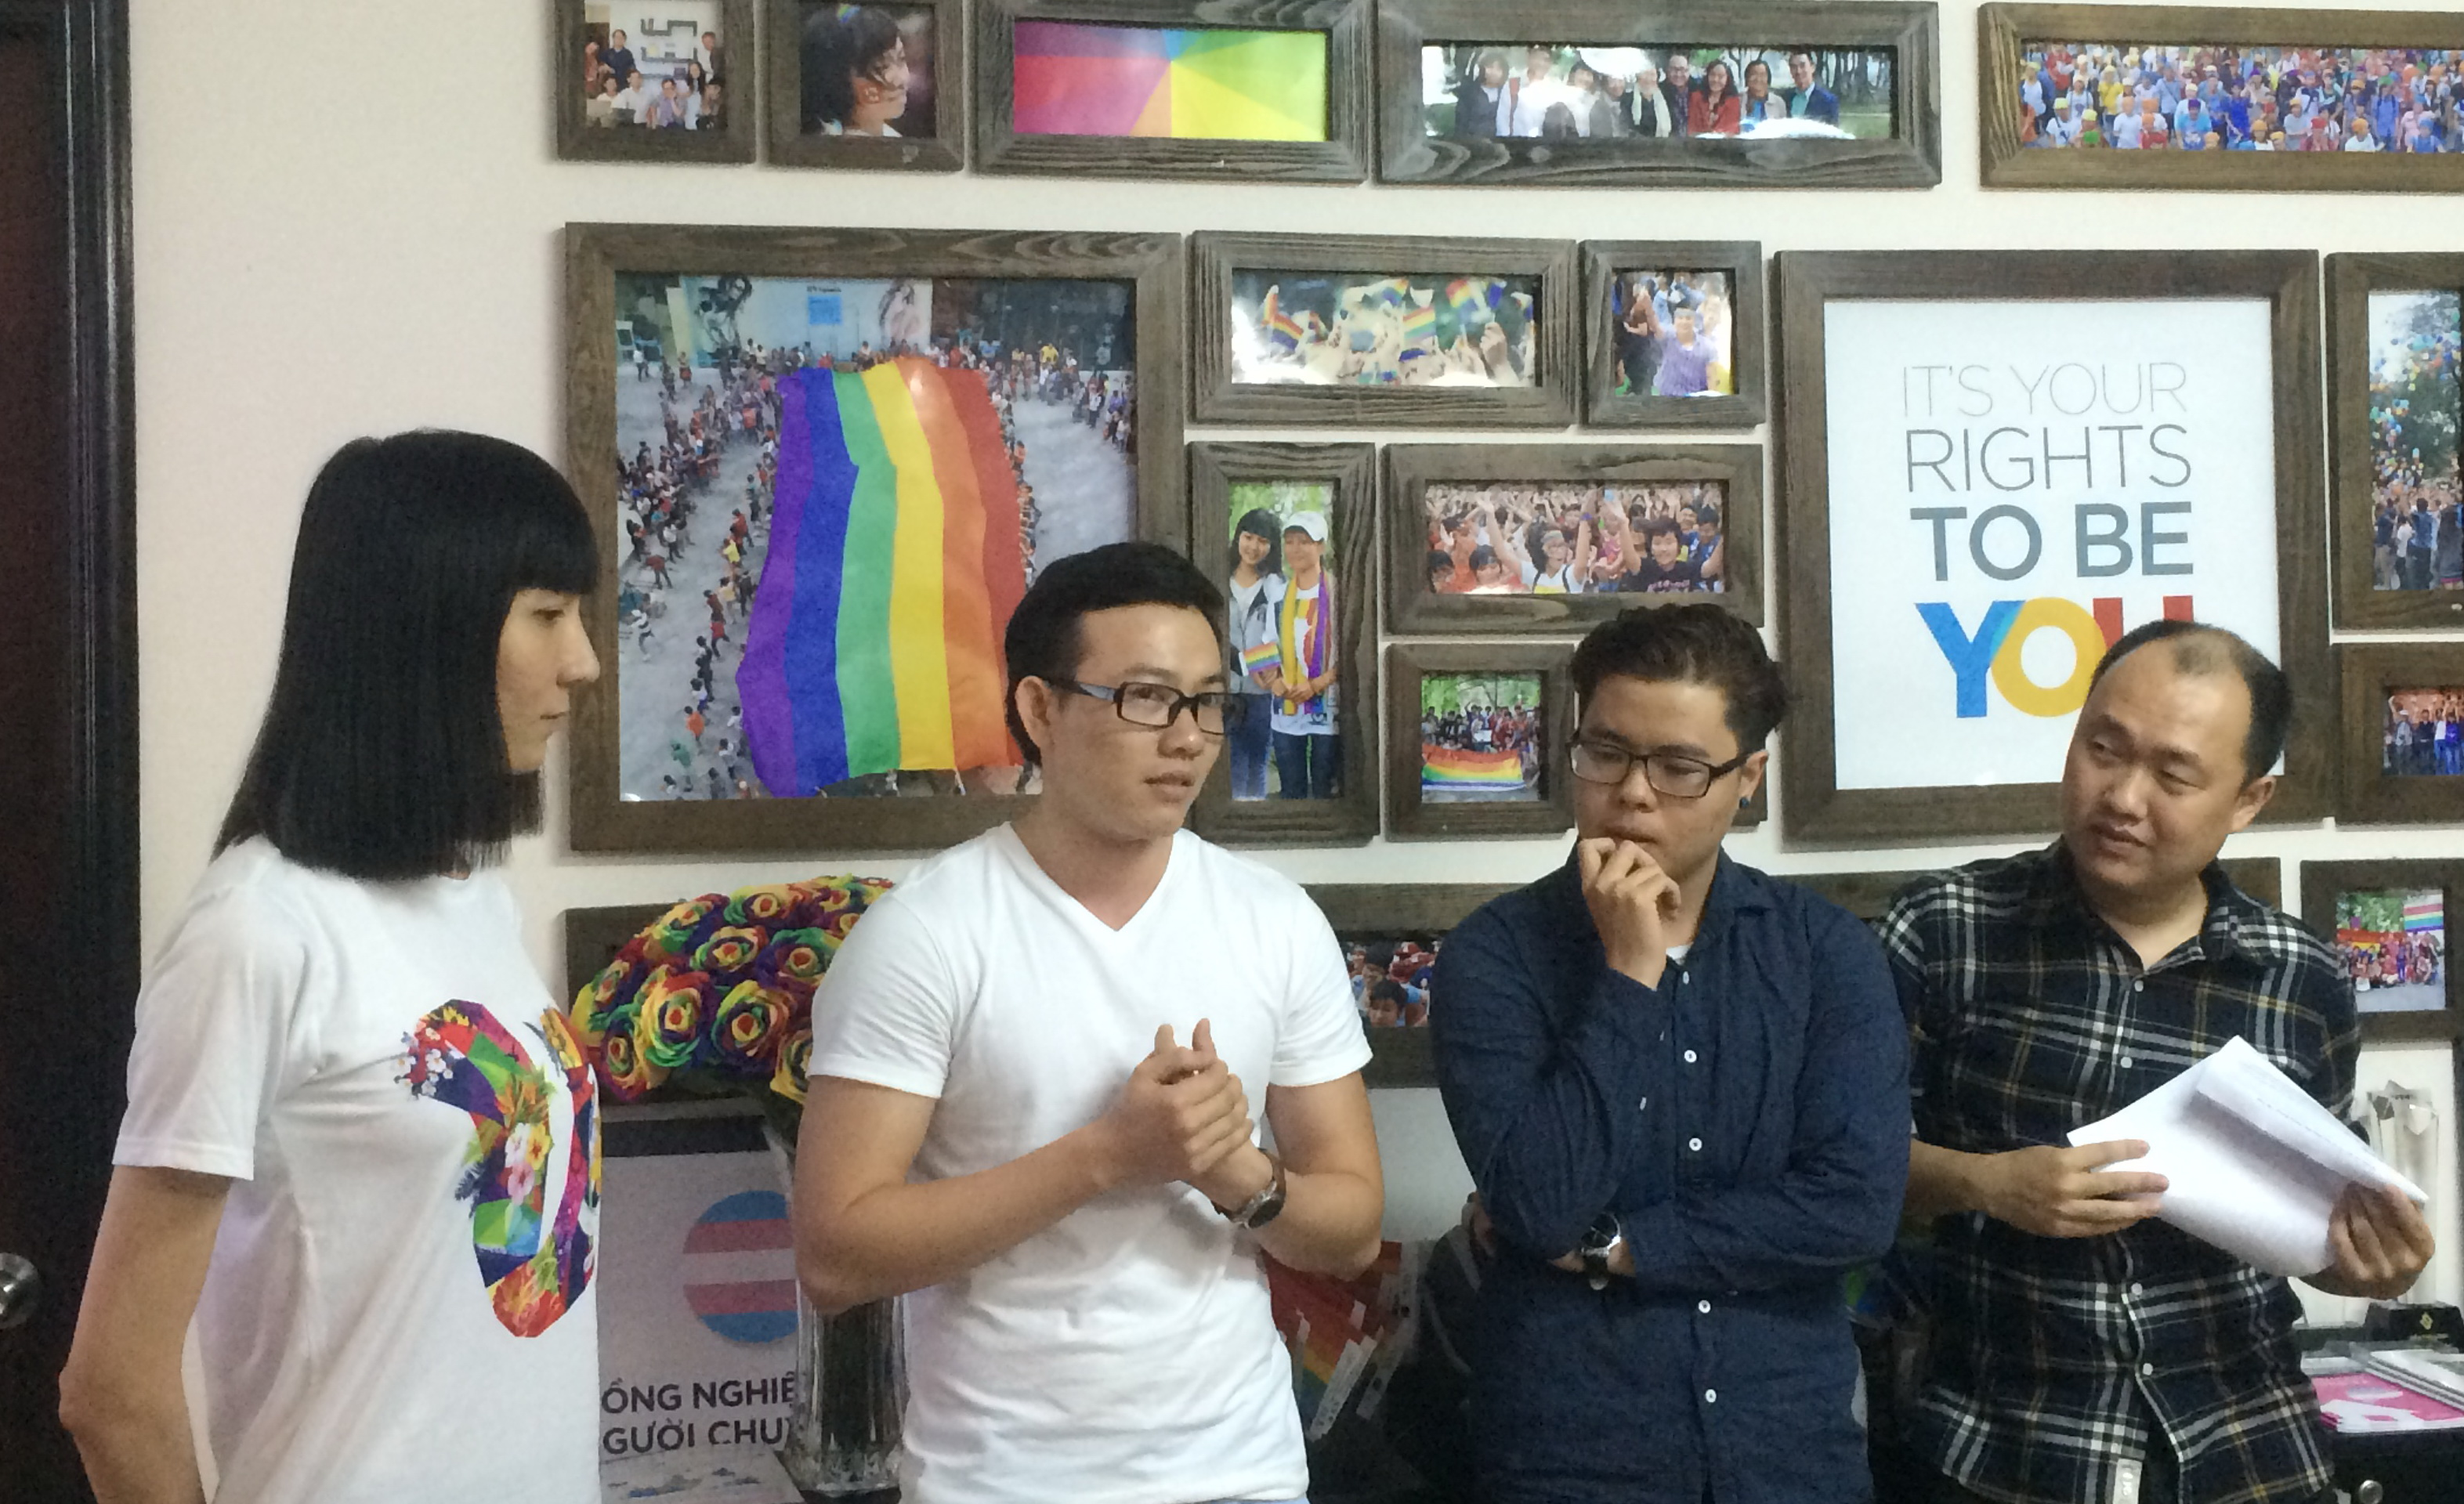 Transgender people concerned over sex reassignment legalization in Vietnam